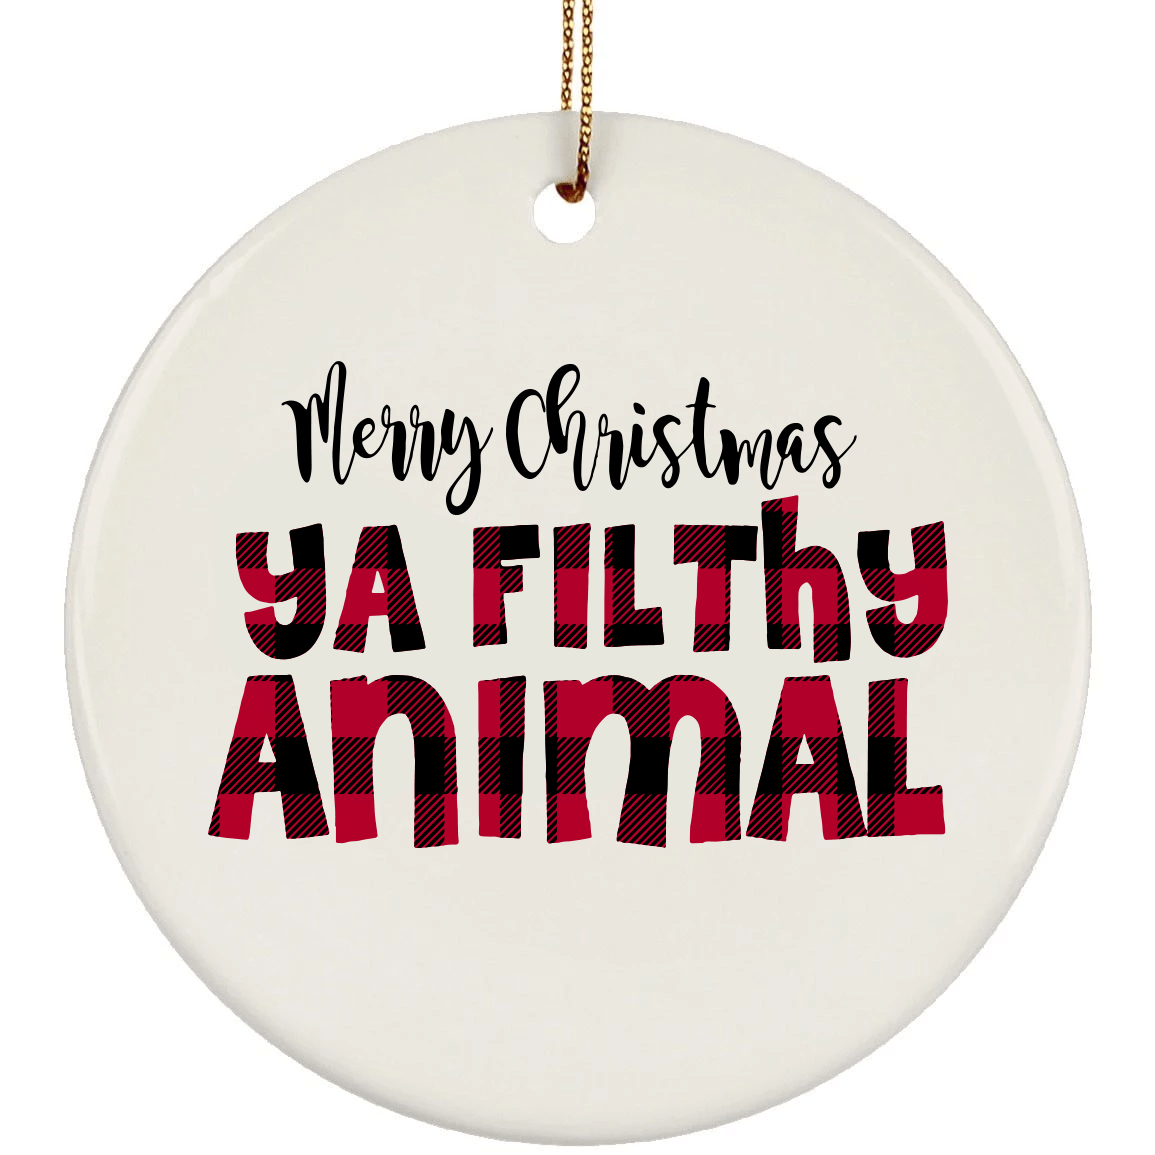 Plaid Filthy Animal Christmas Ceramic Circle Ornament